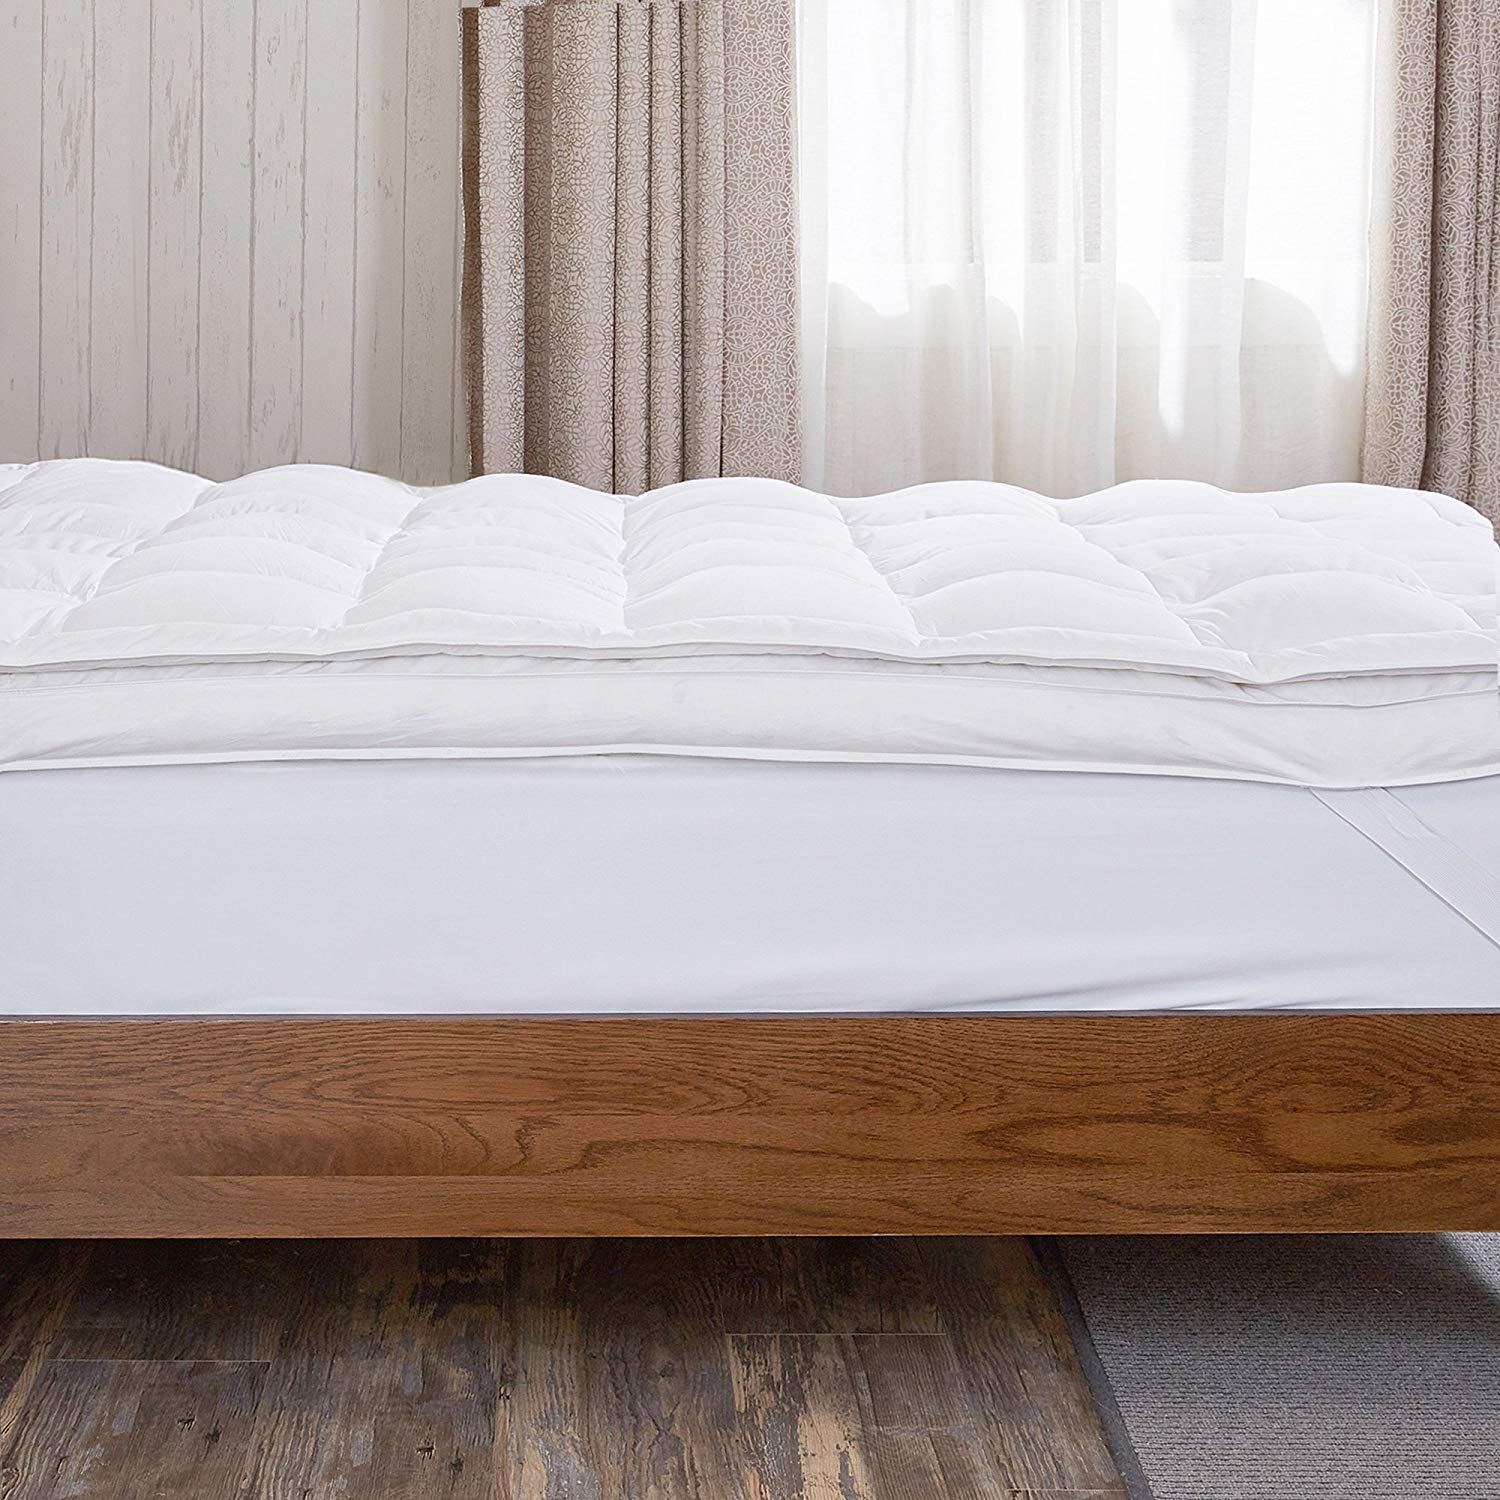 puredown Feather Mattress Topper Review by www.snoremagazine.com